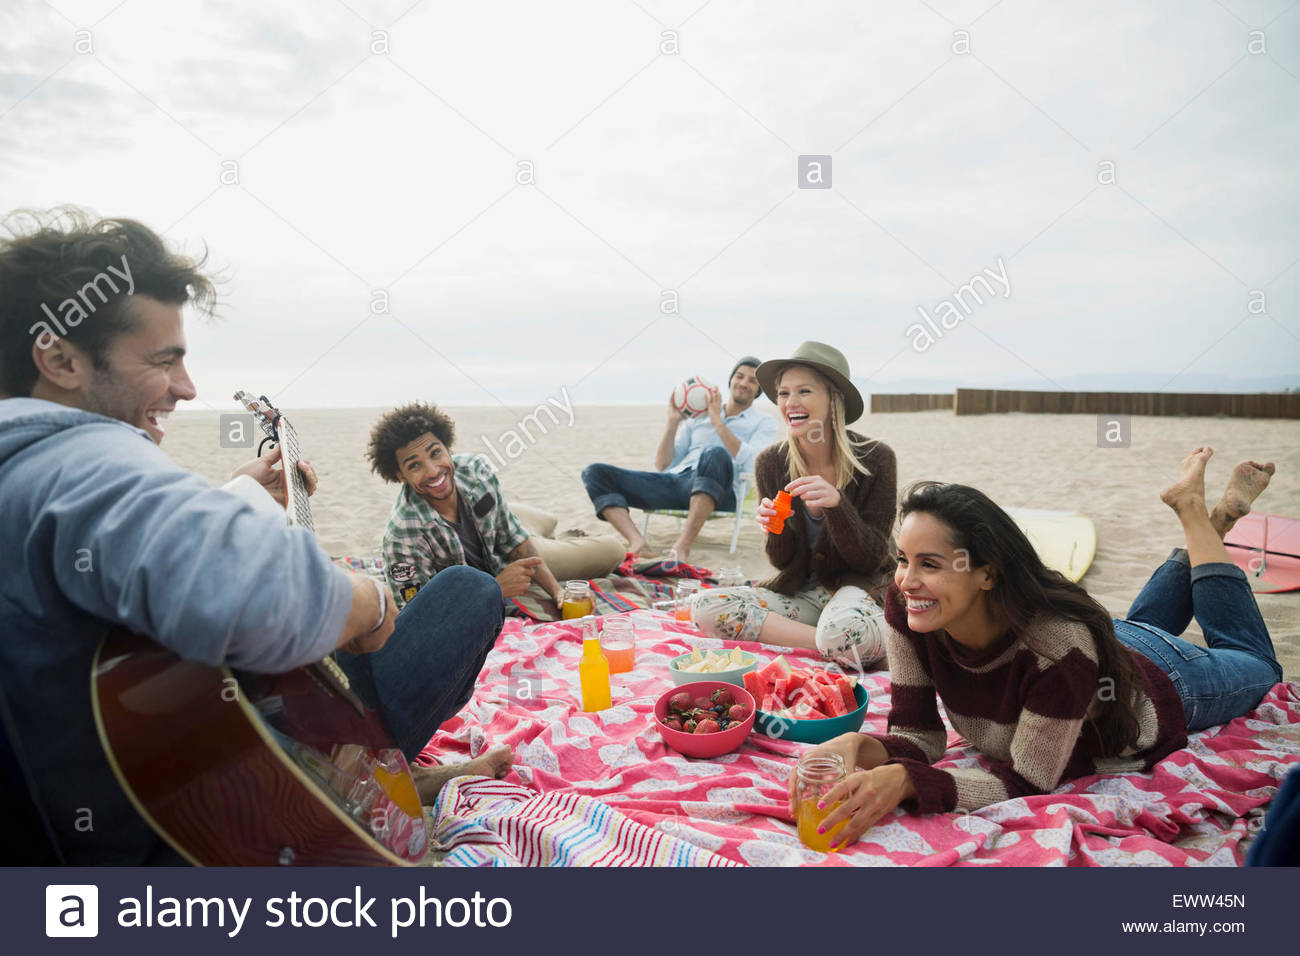 Friends hanging out playing guitar picnicking on beach - Stock Image